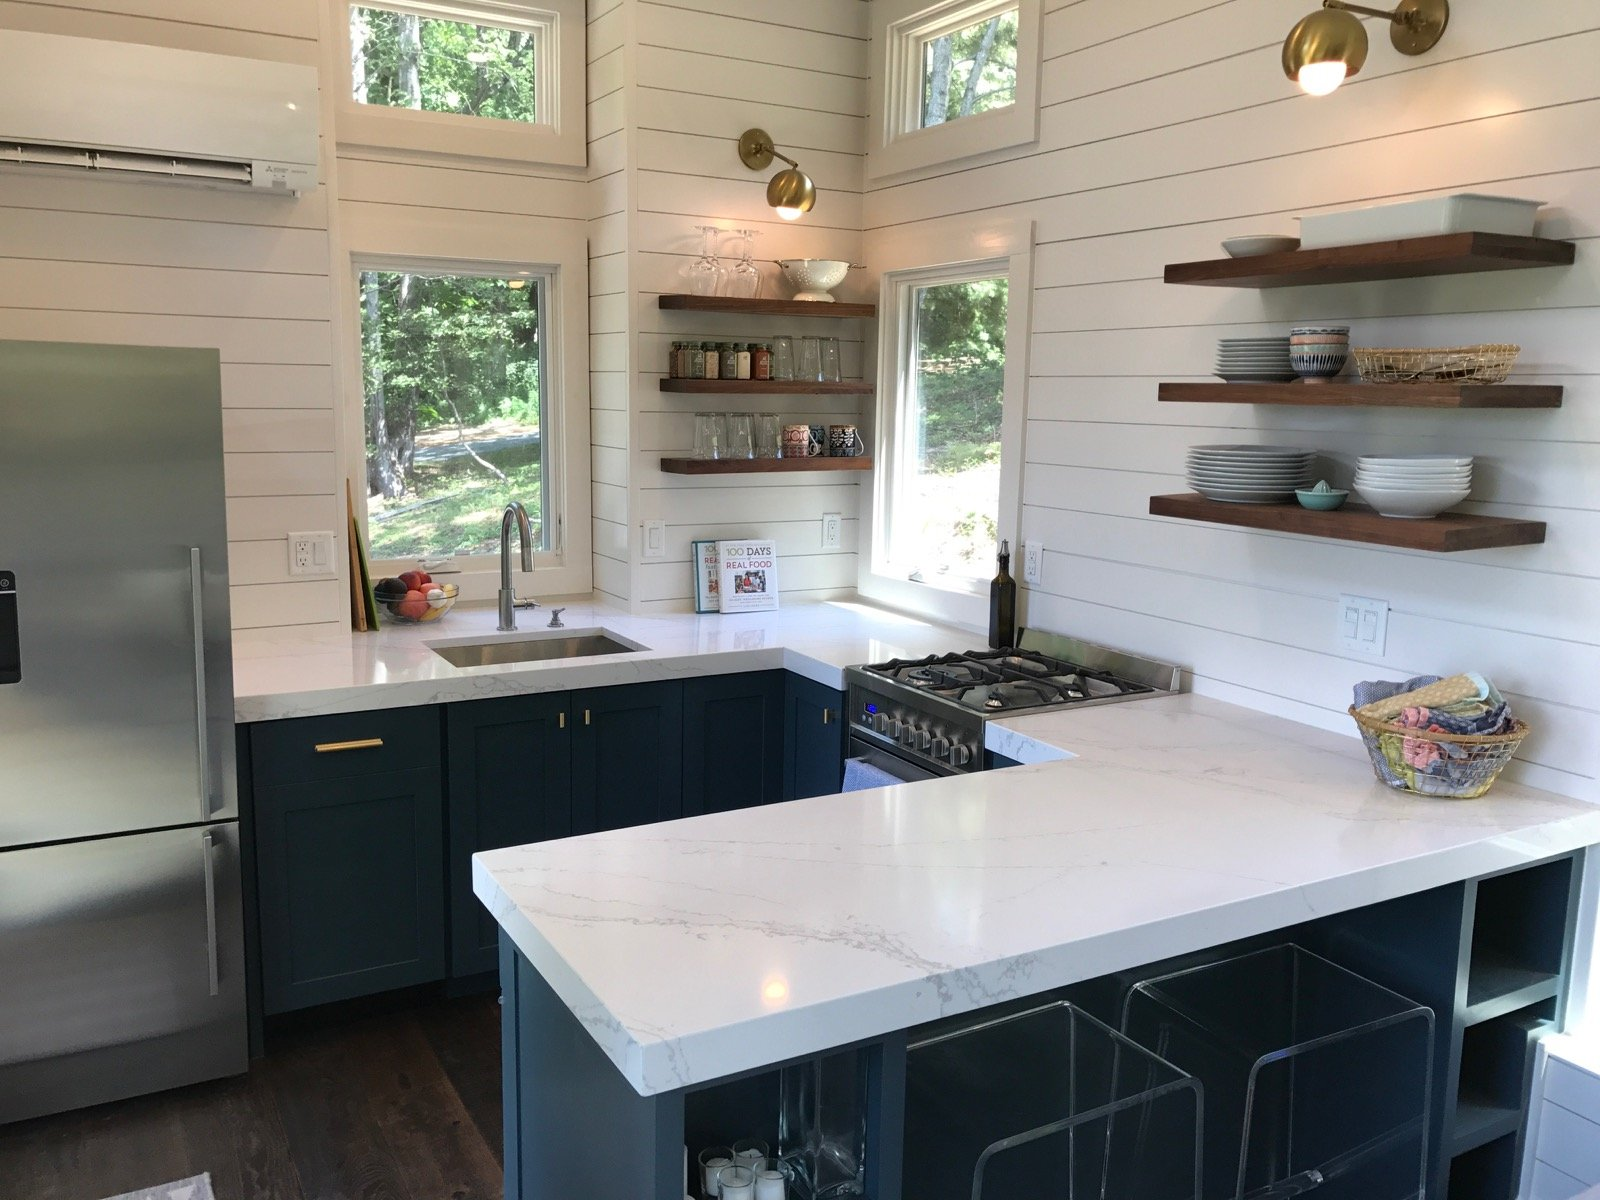 What 39 s in our new tiny house kitchen 100 days of real food - Interior design styles for small space property ...